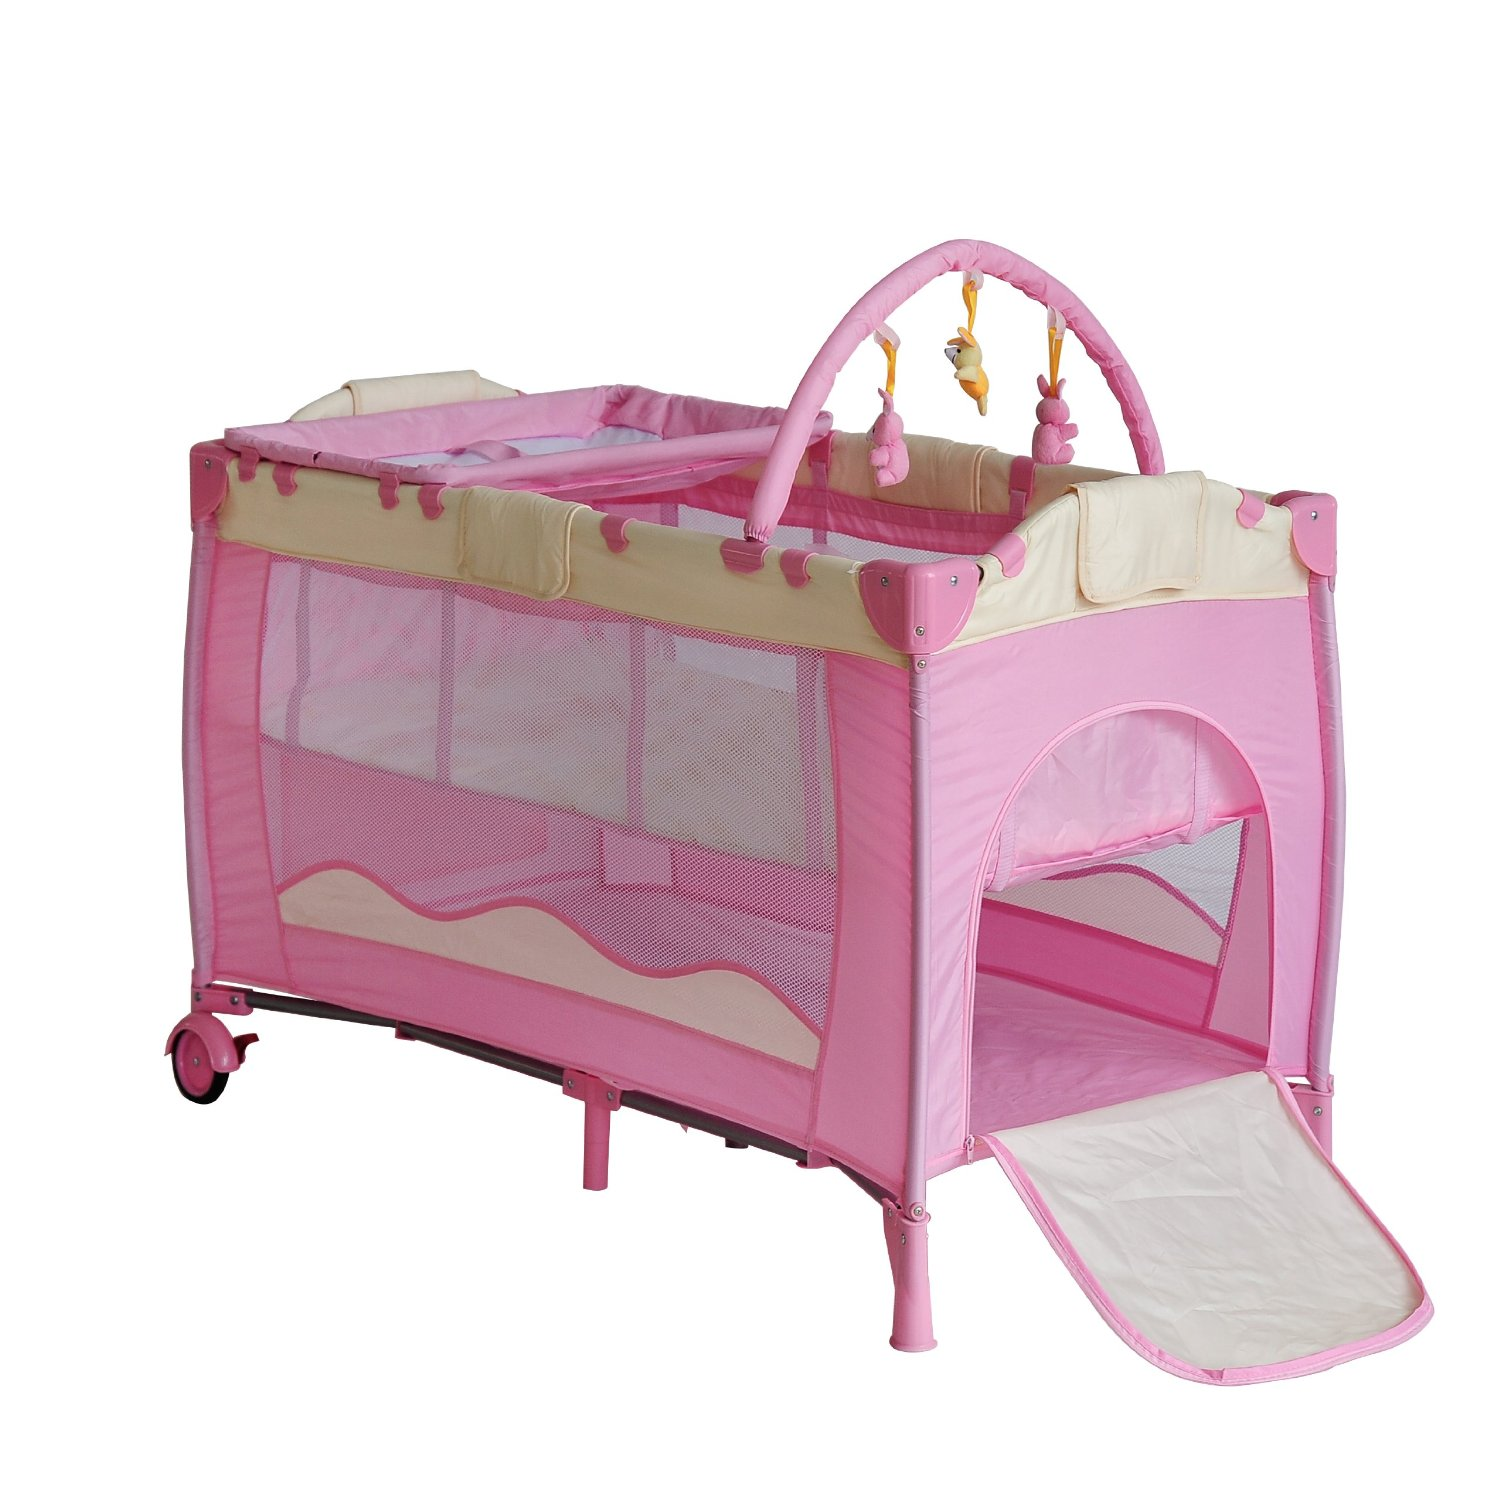 Travel Infant Bed 28 Images New Portable Child Baby